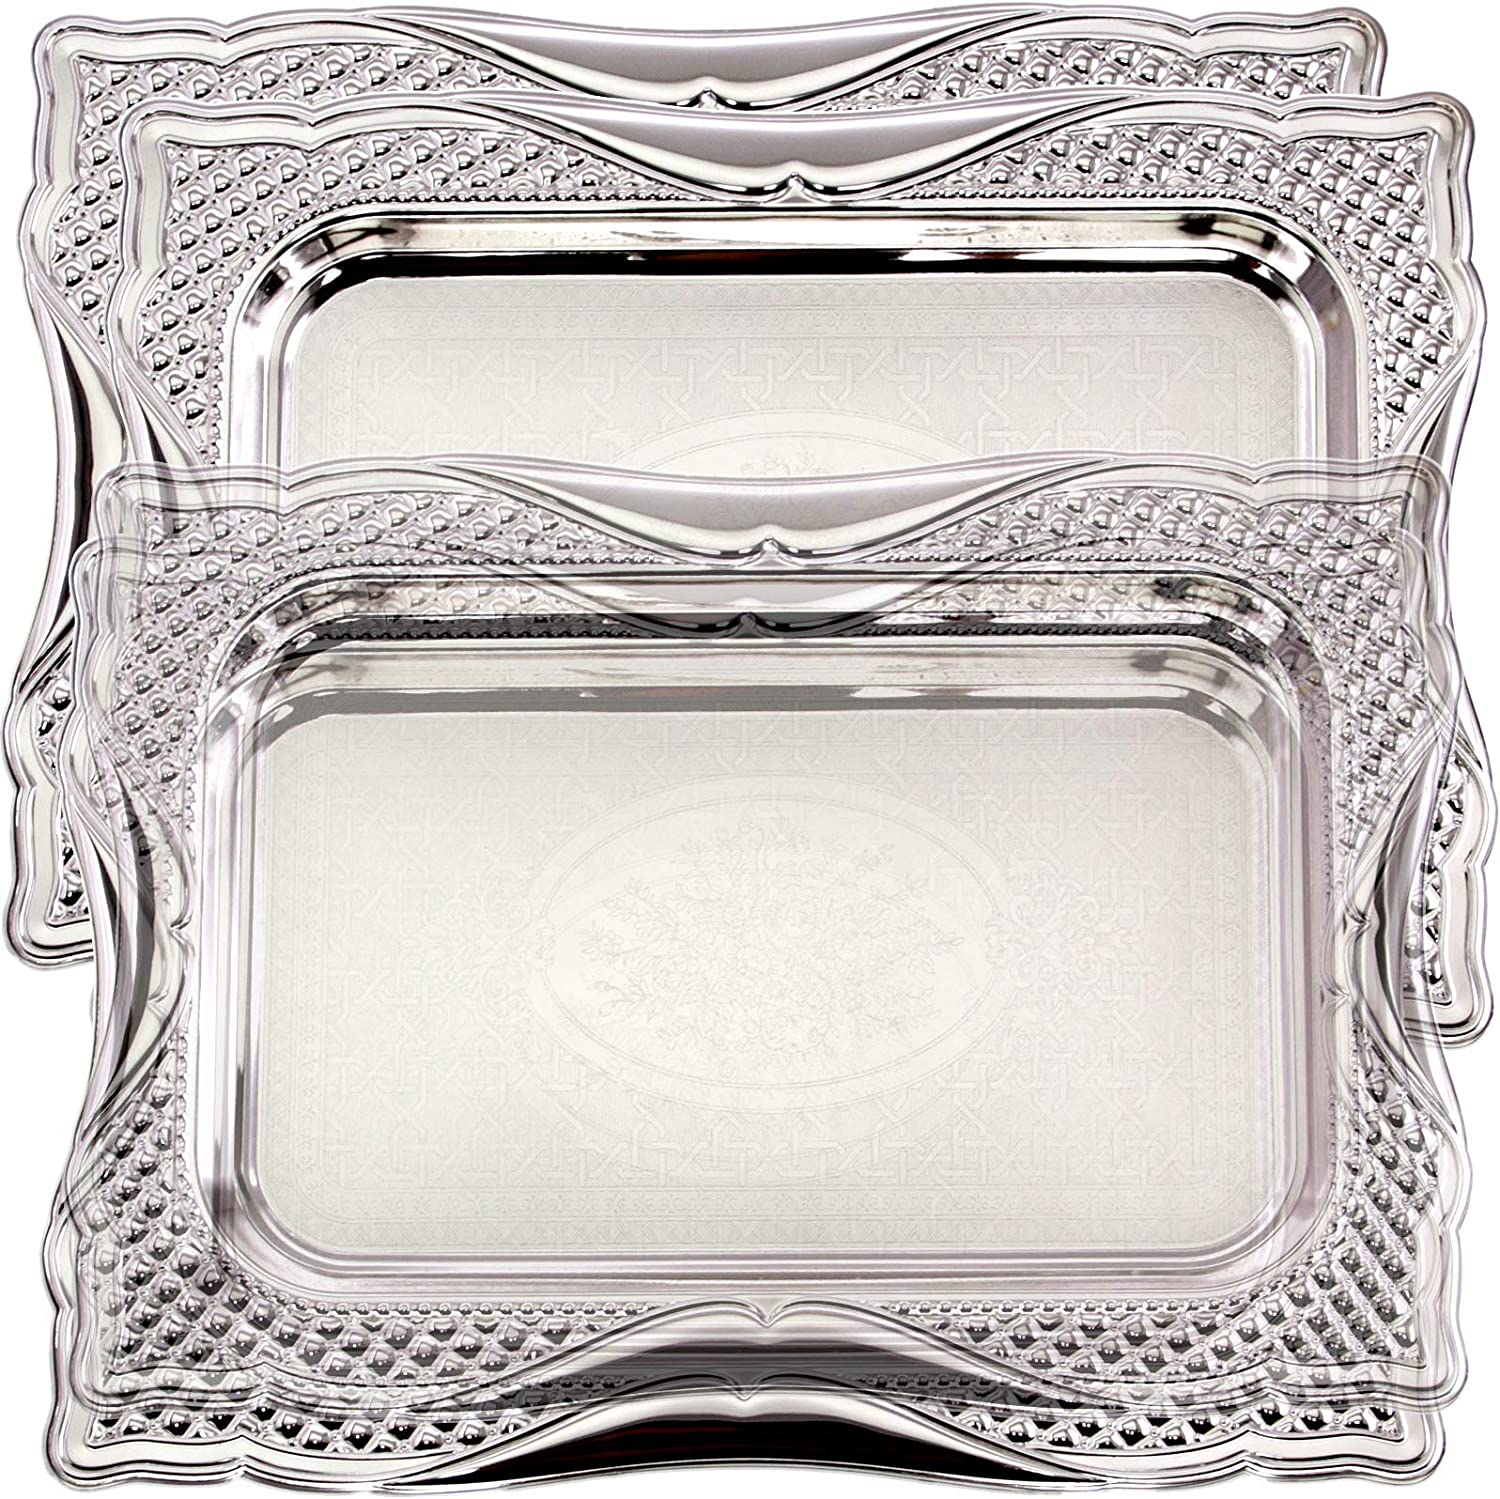 Maro Megastore (Pack of 4) 14.2 Inch x 10.2 Inch Oblong Chrome Plated Serving Tray Stylish Design Leaf Engraved Decorative Party Birthday Wedding Dessert Buffet Wine Decor Platter Plate Base CC-643